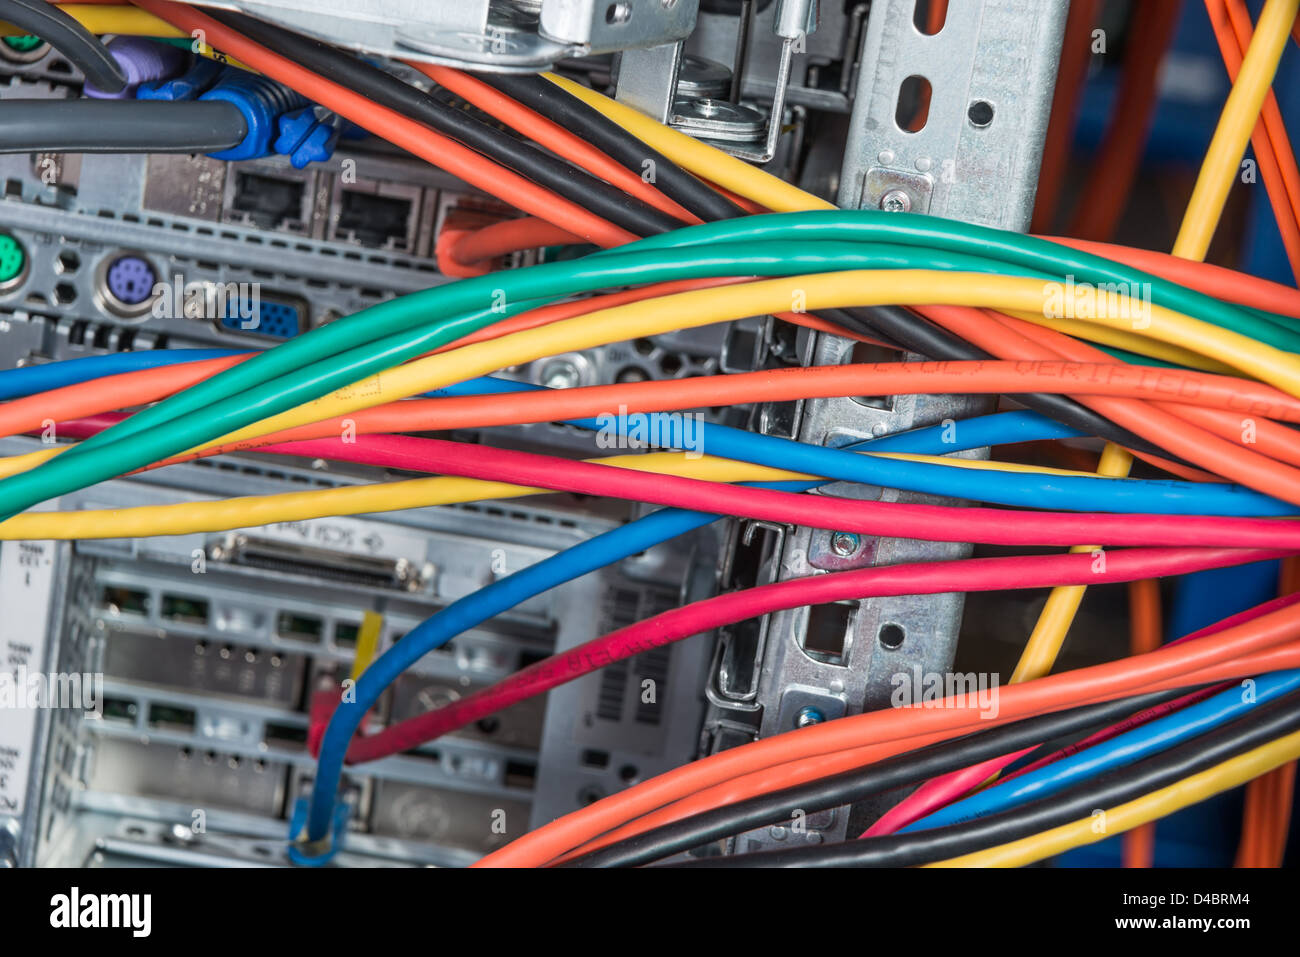 Patch Panel Ethernet Stock Photos Wall Mount Jack Wiring Diagram Also Neat Cable Close Up Of Network Hub And Cables Image